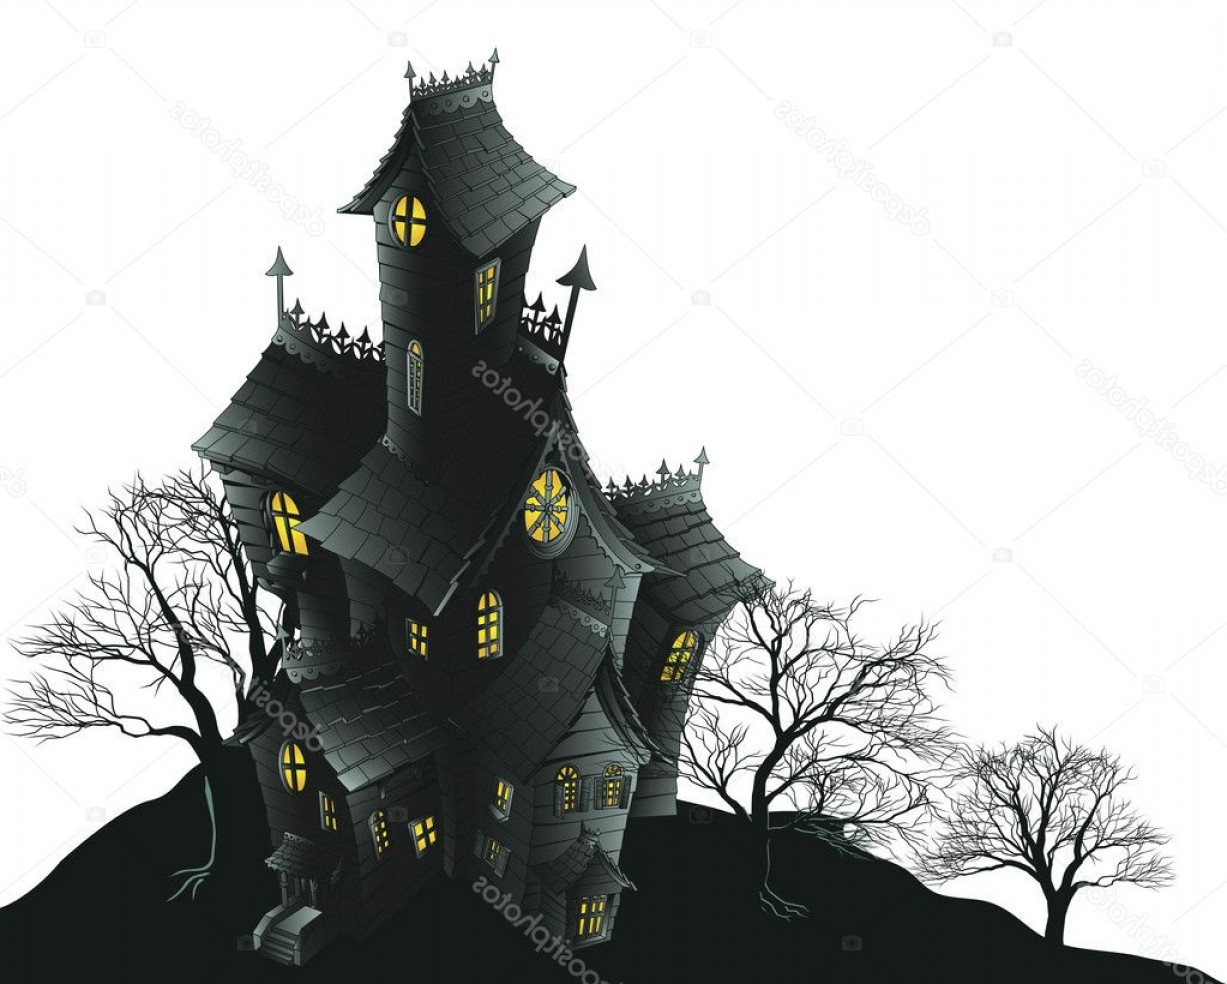 Halloween Haunted House Silhouette Vector: Stock Illustration Scary Haunted House And Trees